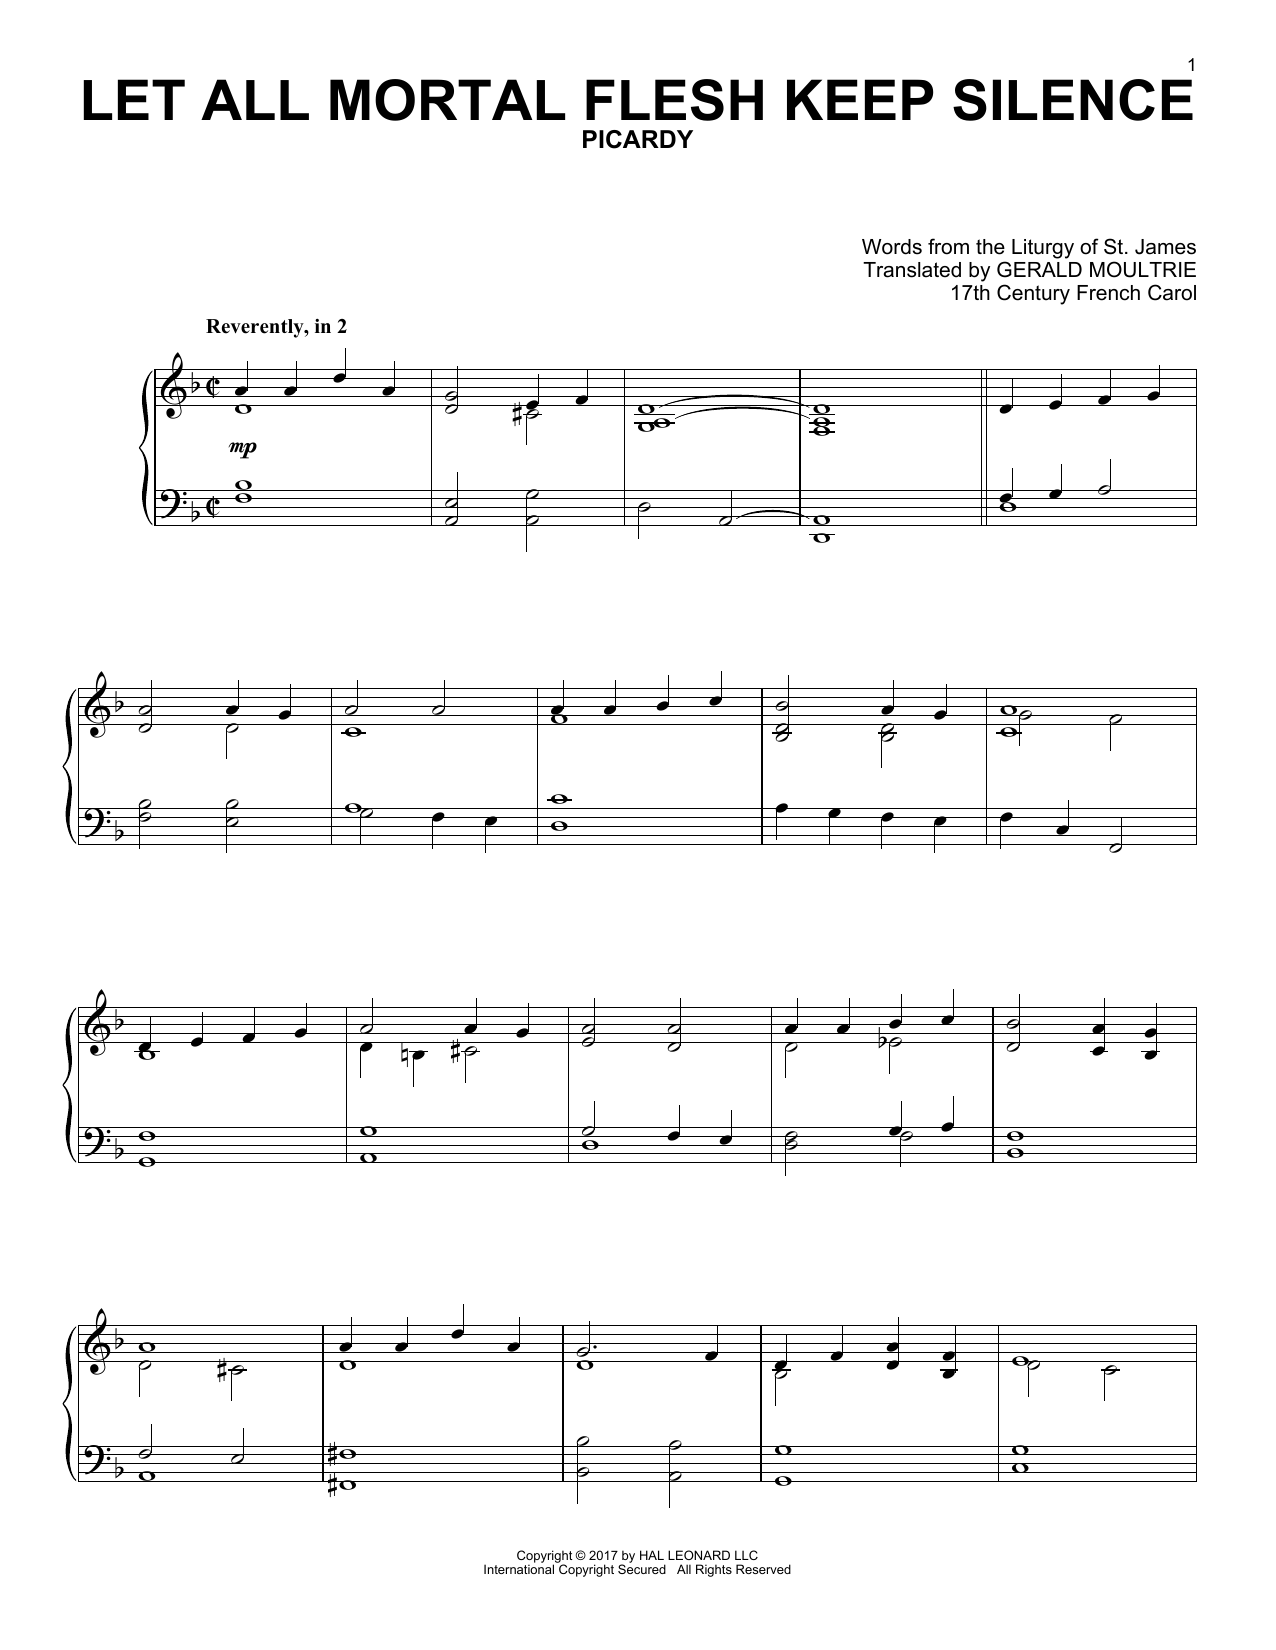 17th Century French Carol Let All Mortal Flesh Keep Silence sheet music notes and chords. Download Printable PDF.